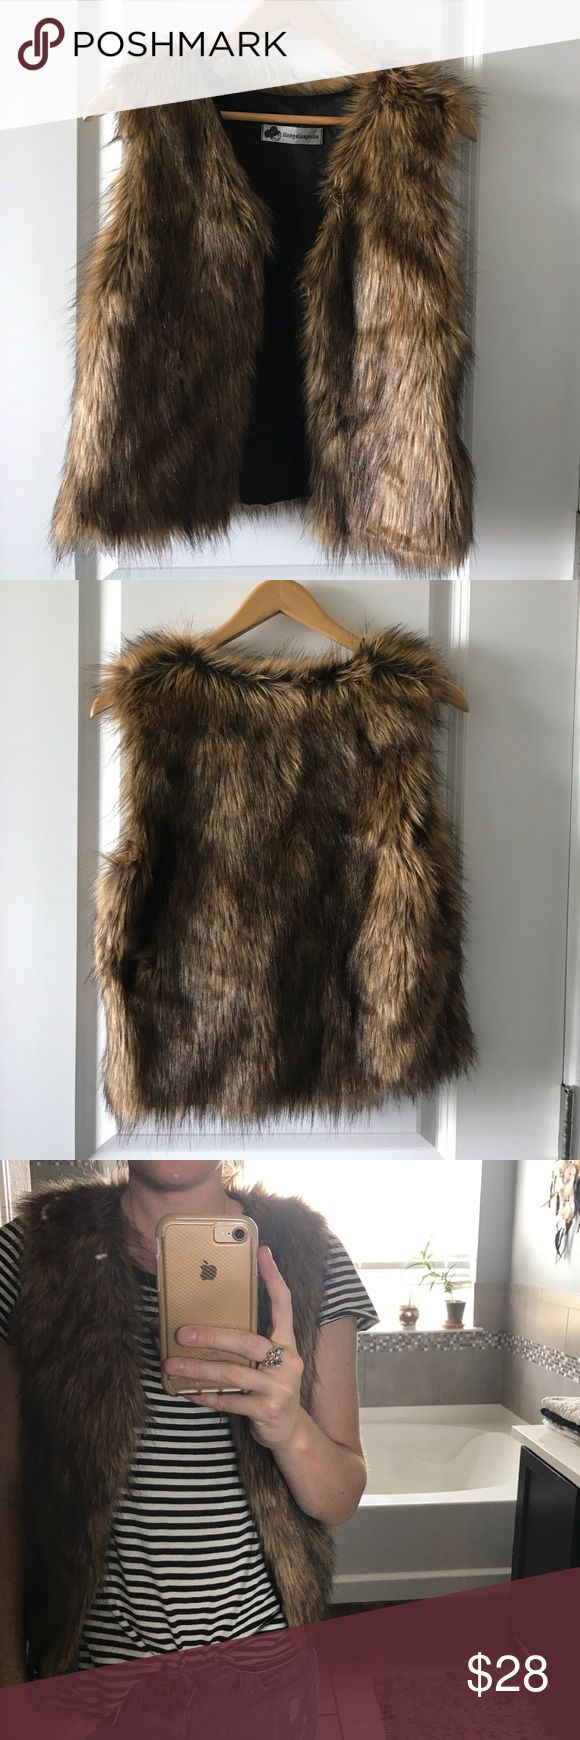 Faux fur vest Faux fur vest in brown and black. 19 1/2 inch in length. Great layering piece for fall and winter! 20% poly, 80 acryl. No size listed but best for xs and small IMO. I'm usually a small. Jackets & Coats Vests